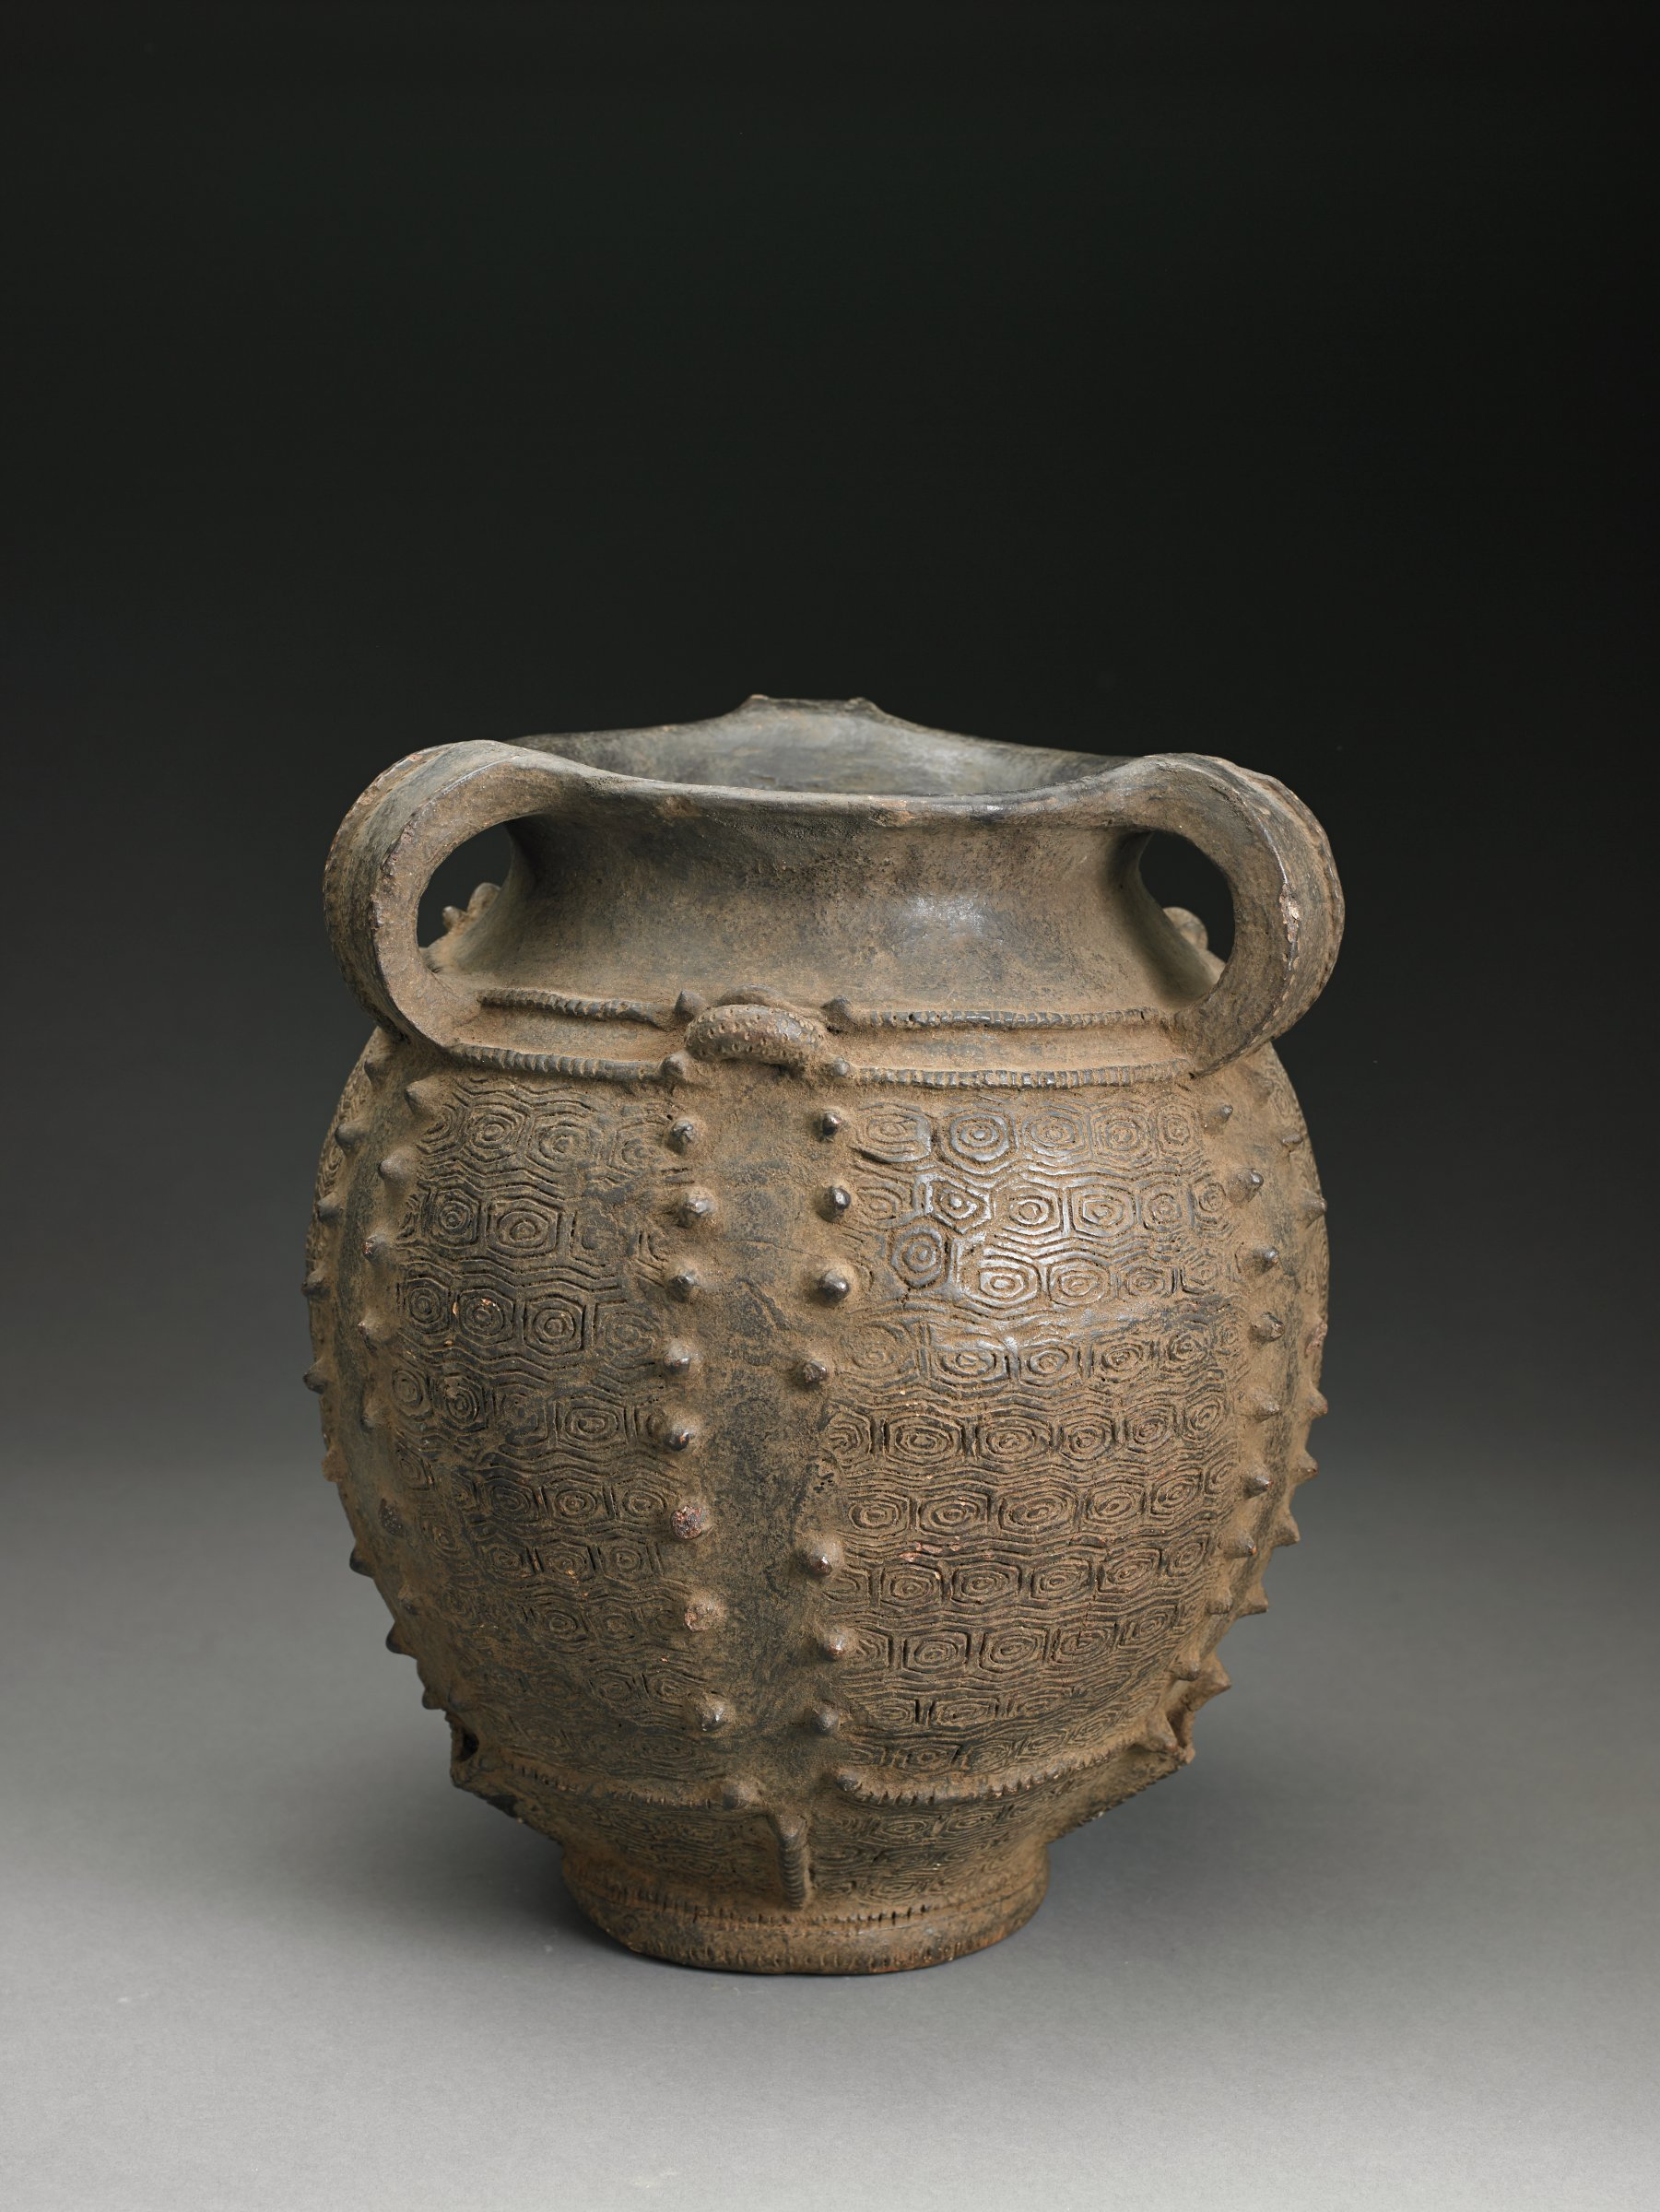 Brown, ovoid vessel has flat bottom, everted rim, and four strap handles. Body of vessel covered with overall incised geometric pattern and parallel vertical rows of raised bumps.